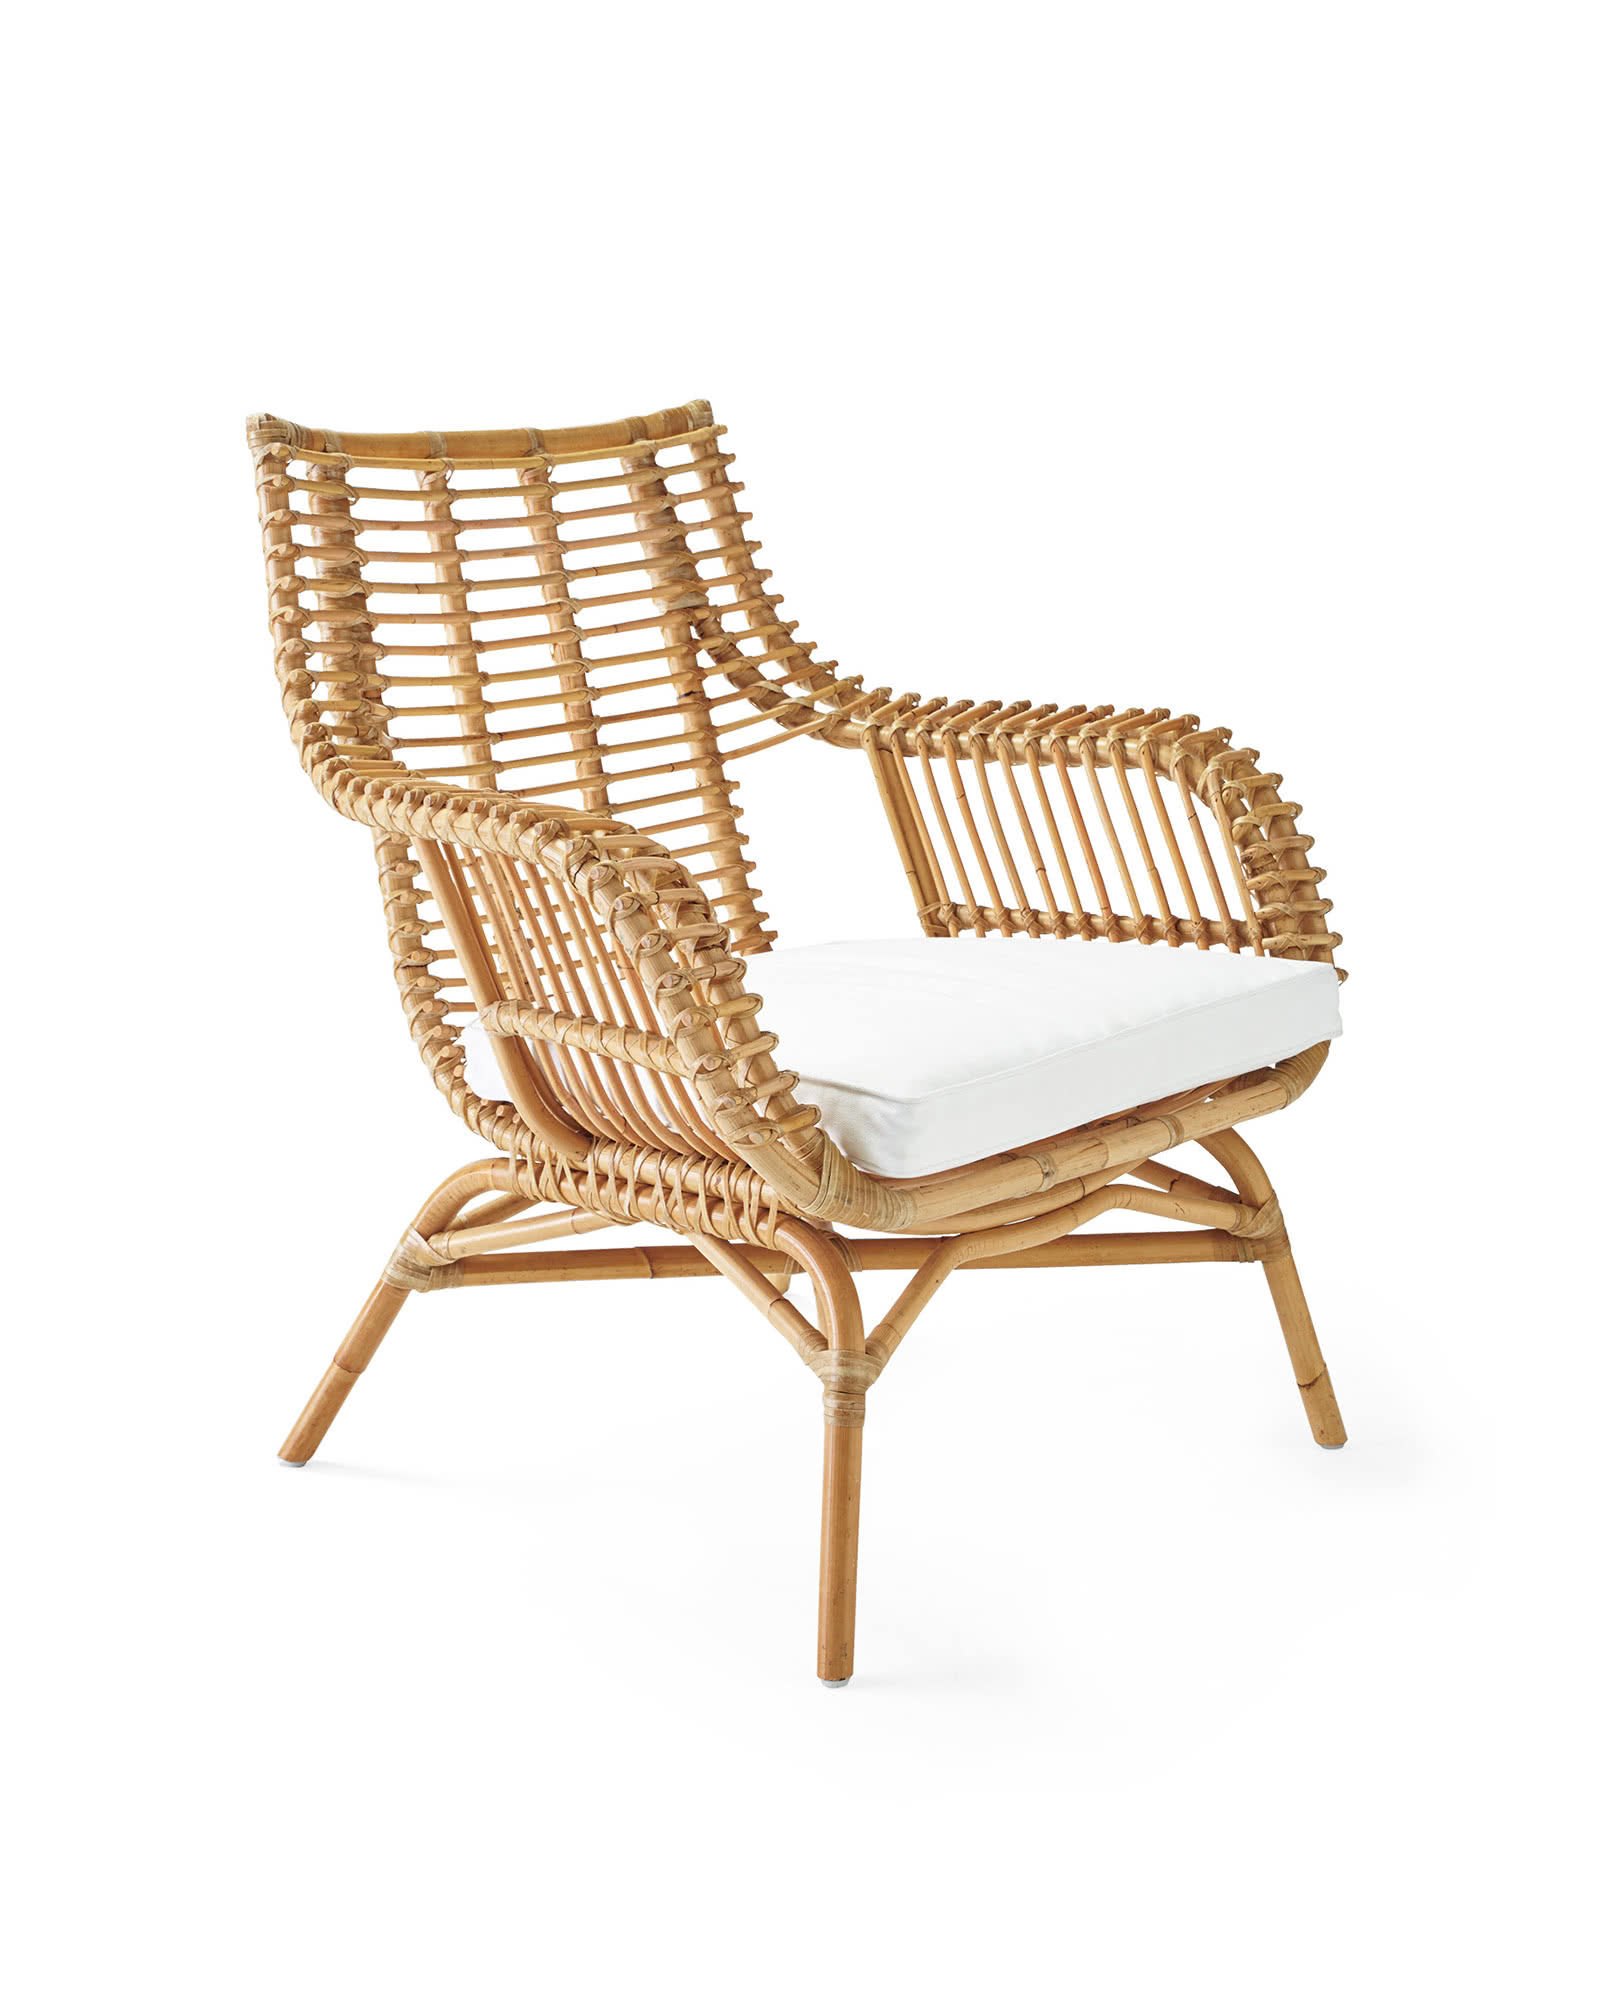 Merveilleux Venice Rattan Chair Cushion,